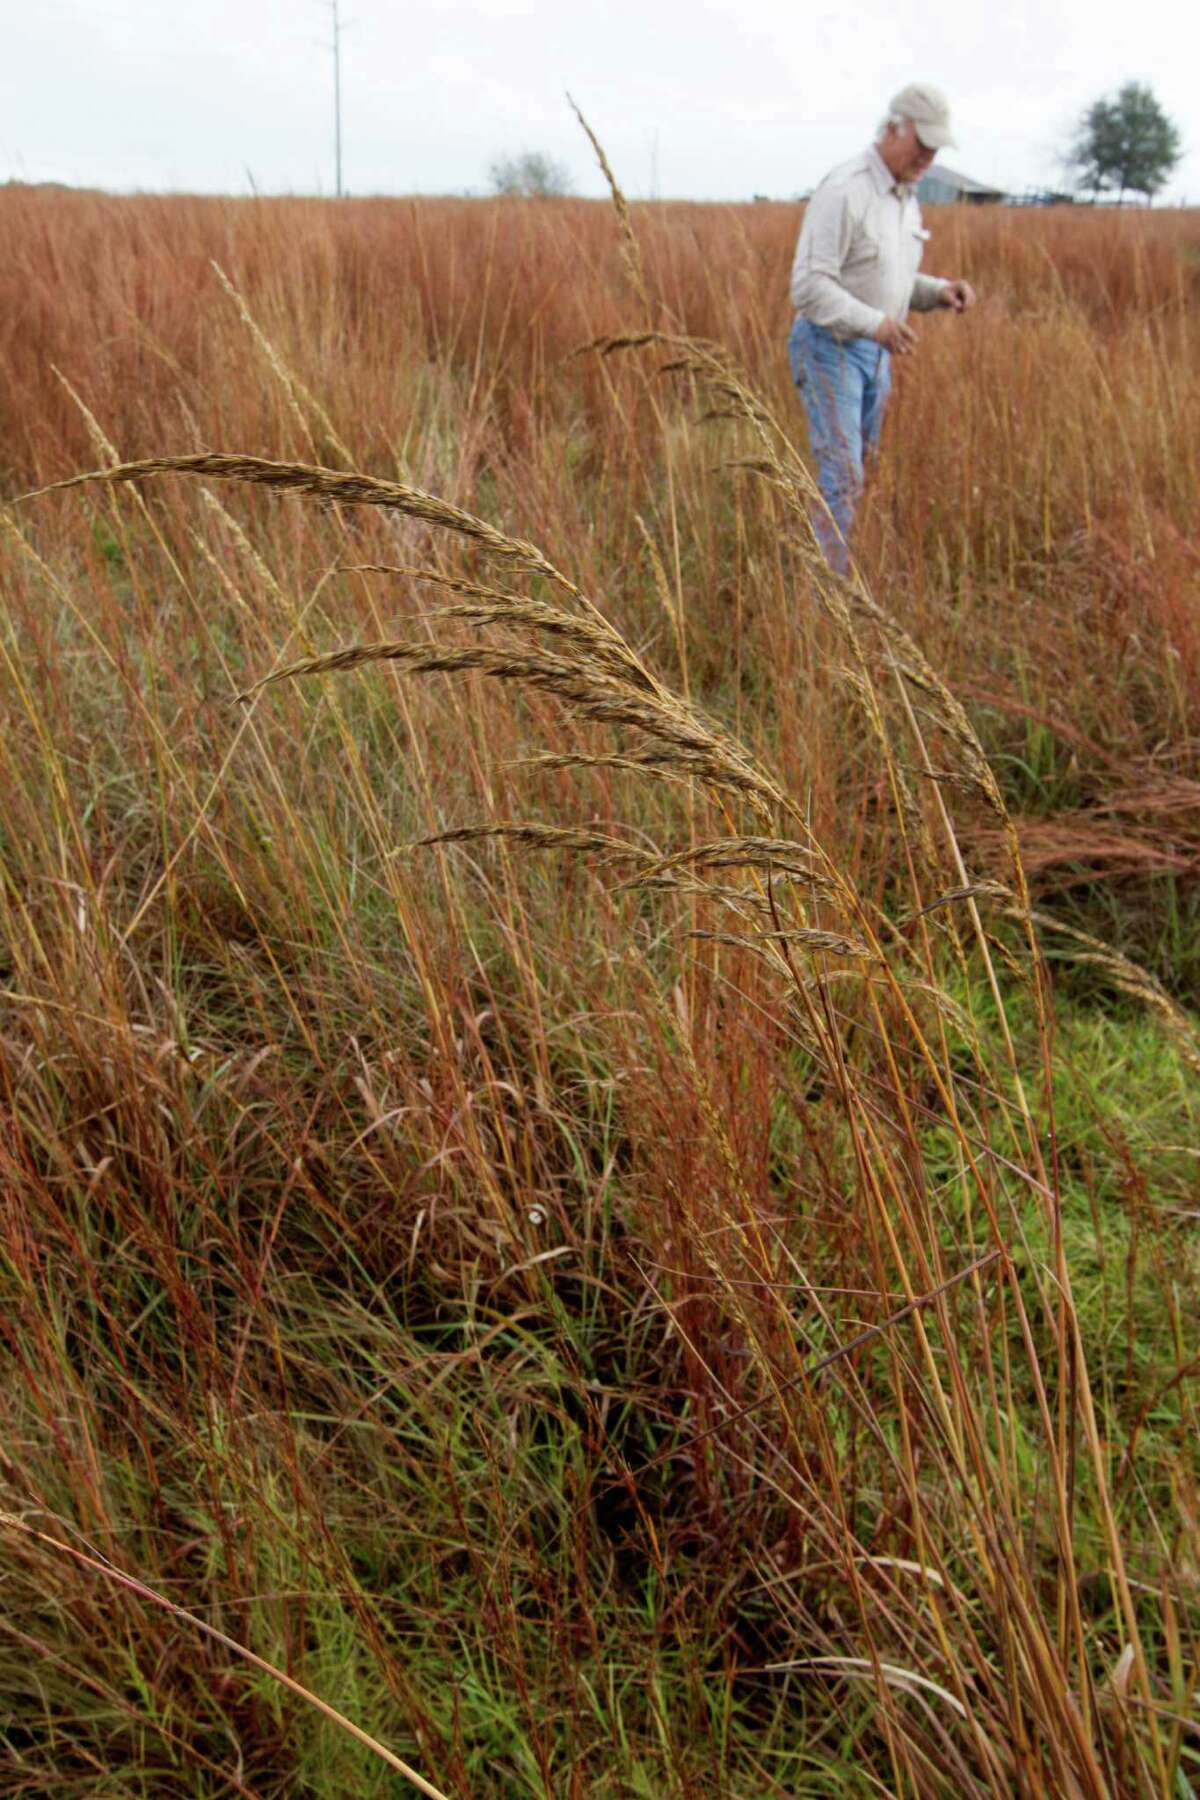 Jim Willis has spent more than a decade restoring overgrazed pastures into native grasslands to make habitats for quail, a rapidly disappearing bird.